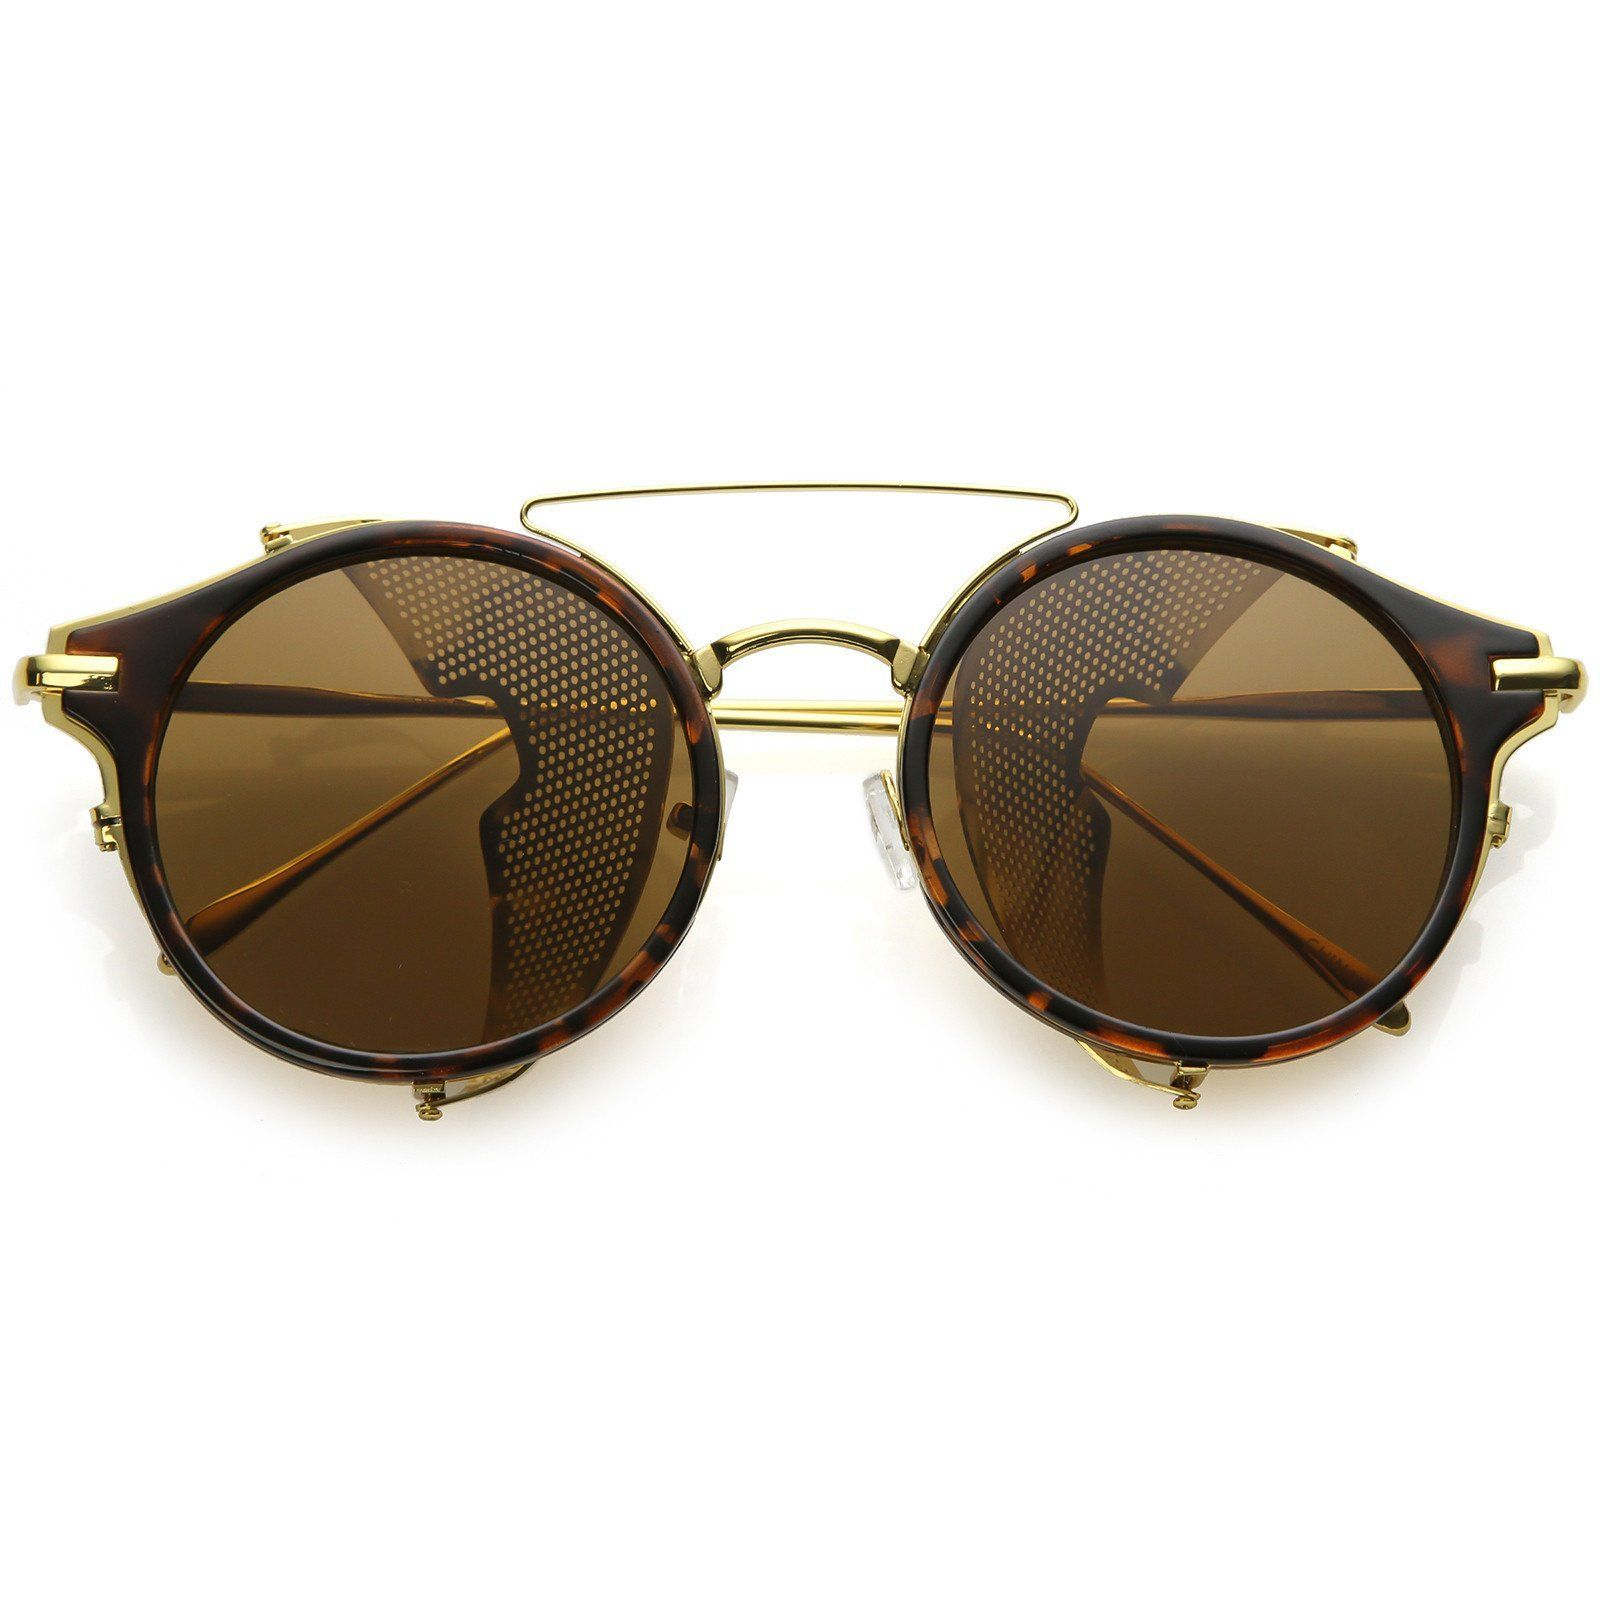 597b8aa9c20 Steampunk Round Horn Rimmed Sunglasses Double Crossbar Fold In Side Covers Flat  Lens 54mm  frame  sunglass  sunglasses  womens  sunglassla  cateye  mirrored  ...